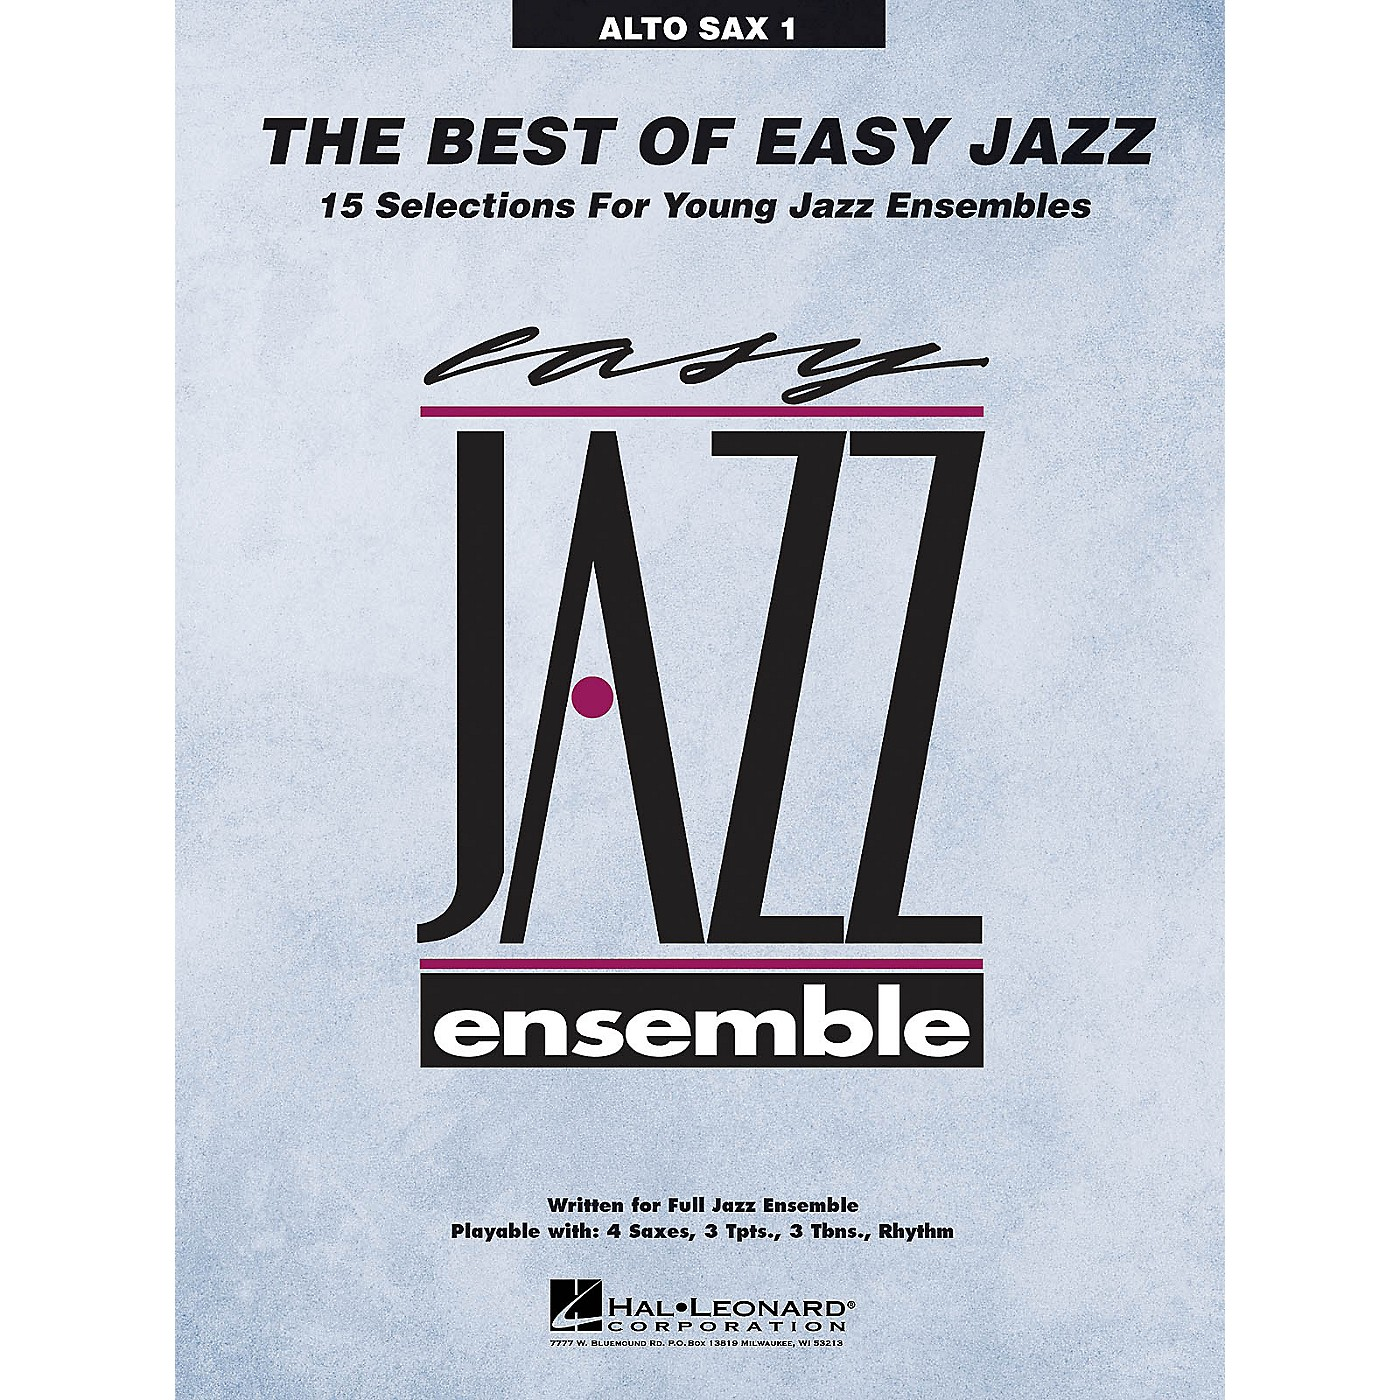 Hal Leonard The Best of Easy Jazz - Alto Sax 1 from Easy Jazz Ensemble Series (Jazz Band Level 2) thumbnail